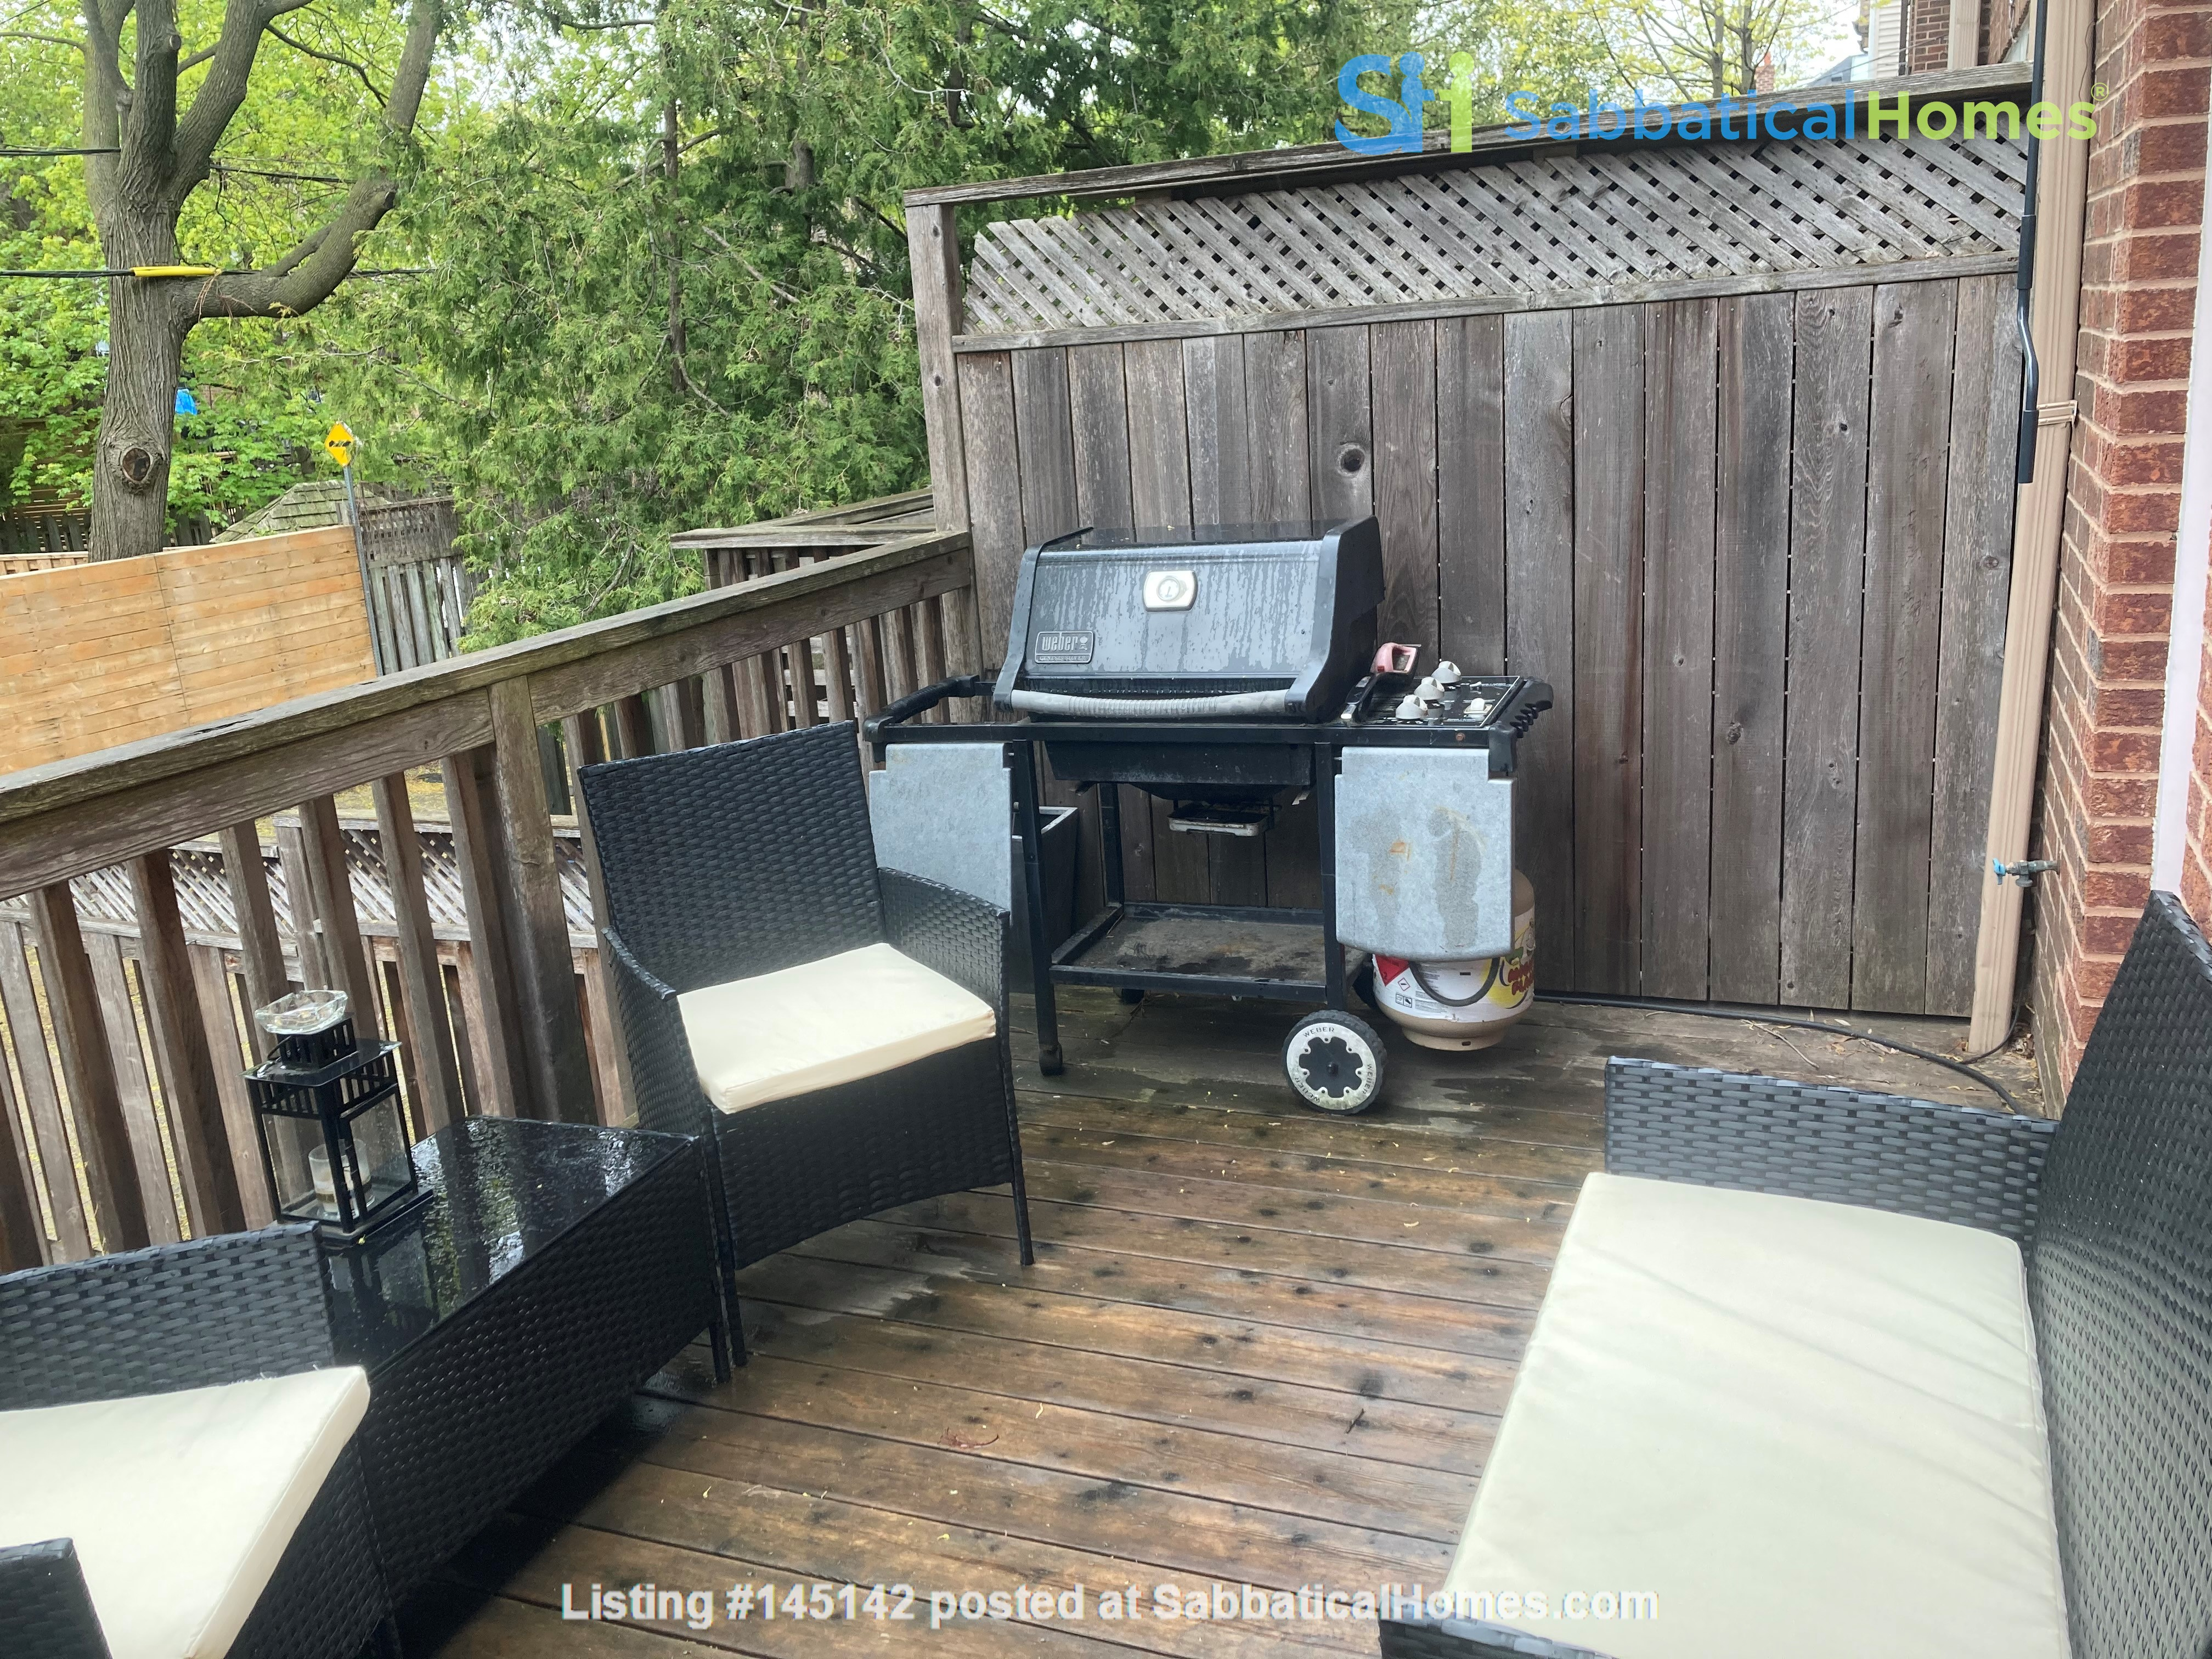 Family friendly townhome with parking in central Toronto Home Rental in Toronto, Ontario, Canada 5